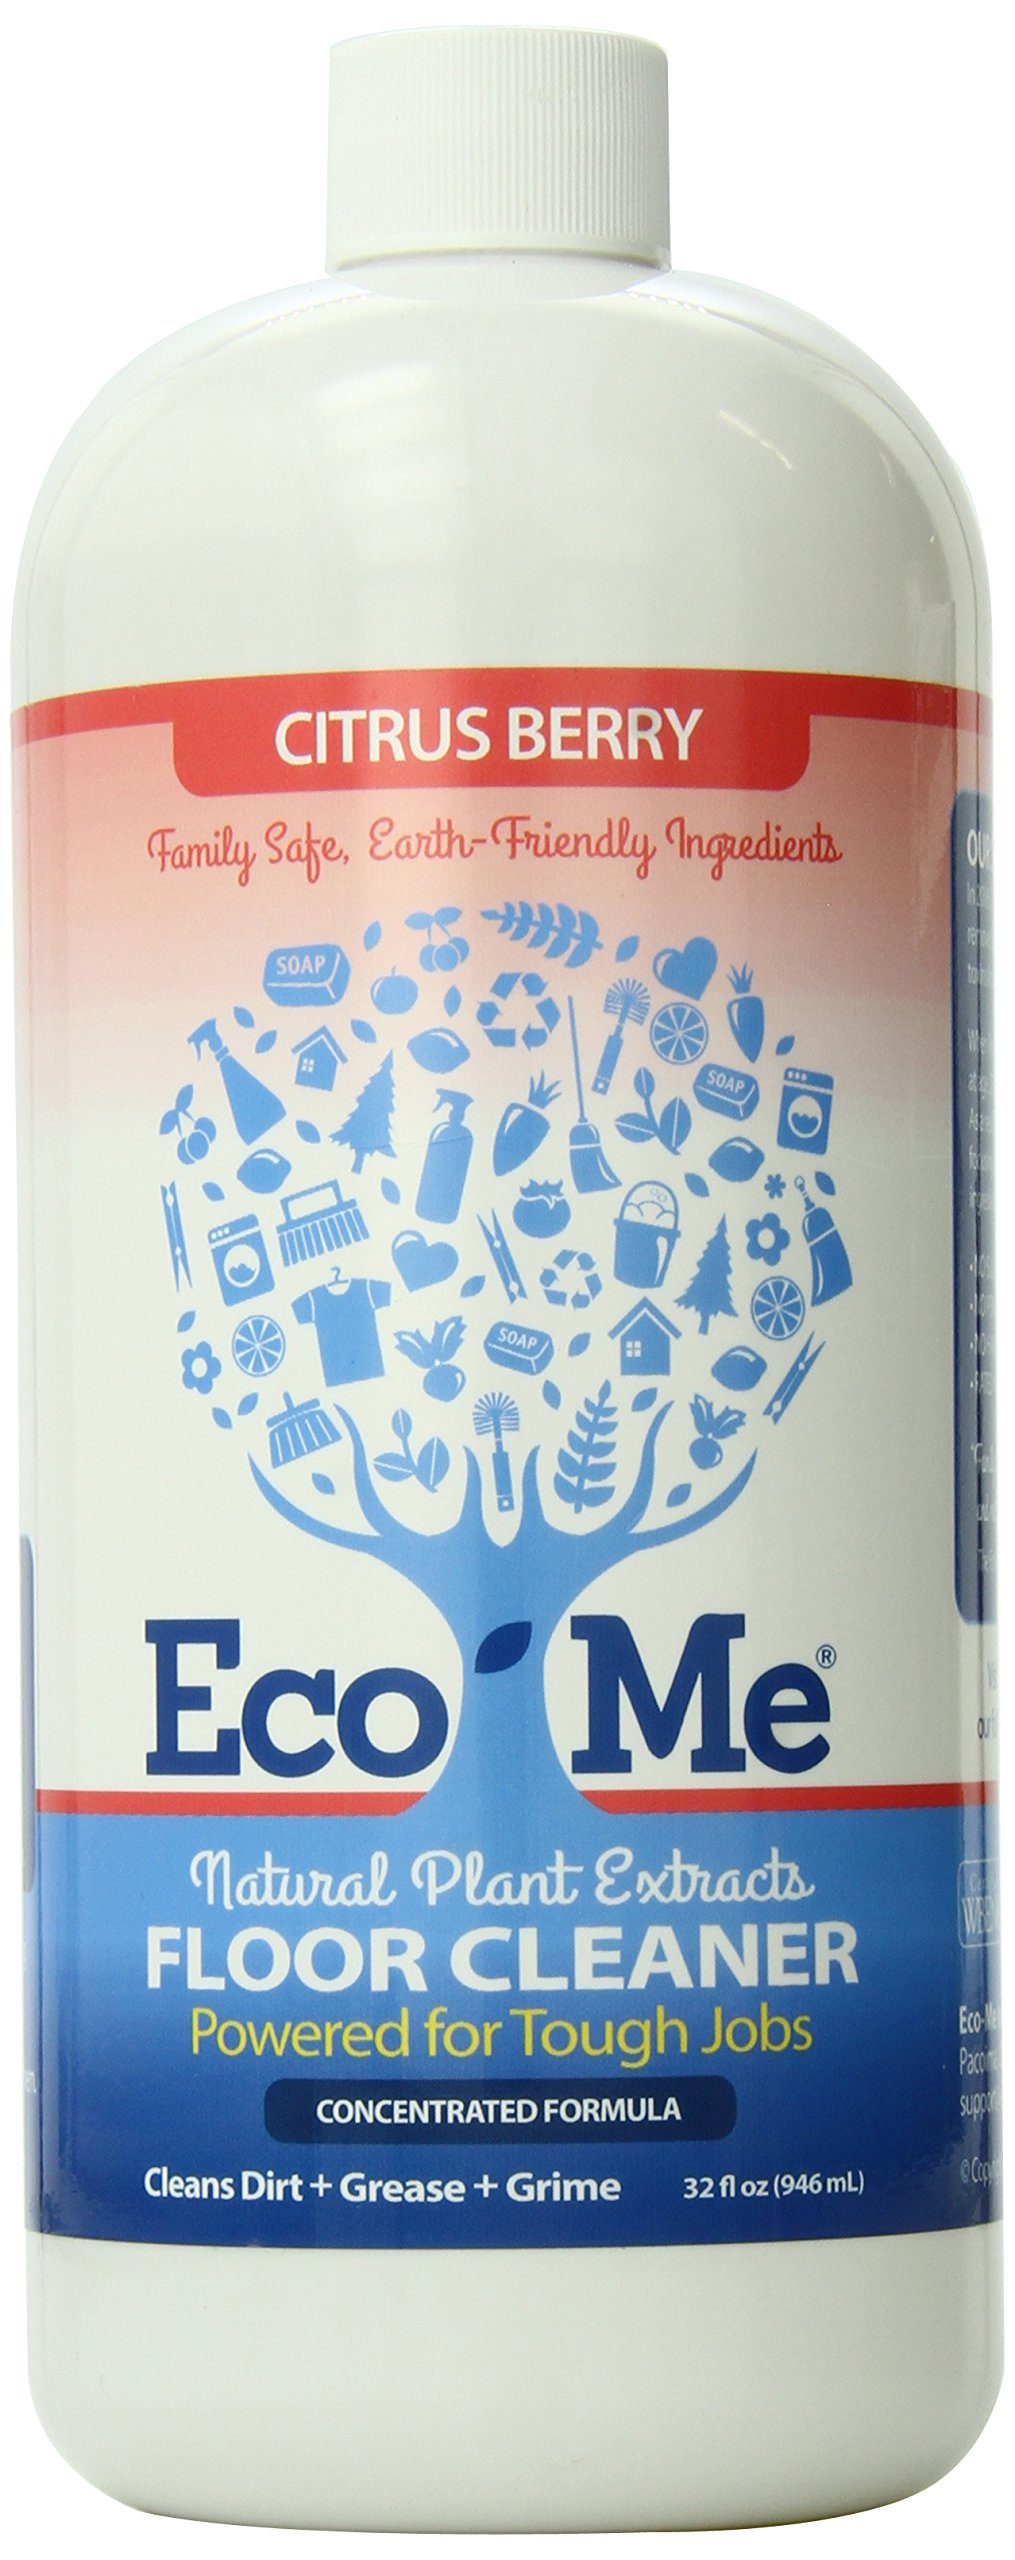 Eco-Me Natural Multi-Surface Floor Cleaner, Citrus Berry, 32 Fluid Ounce